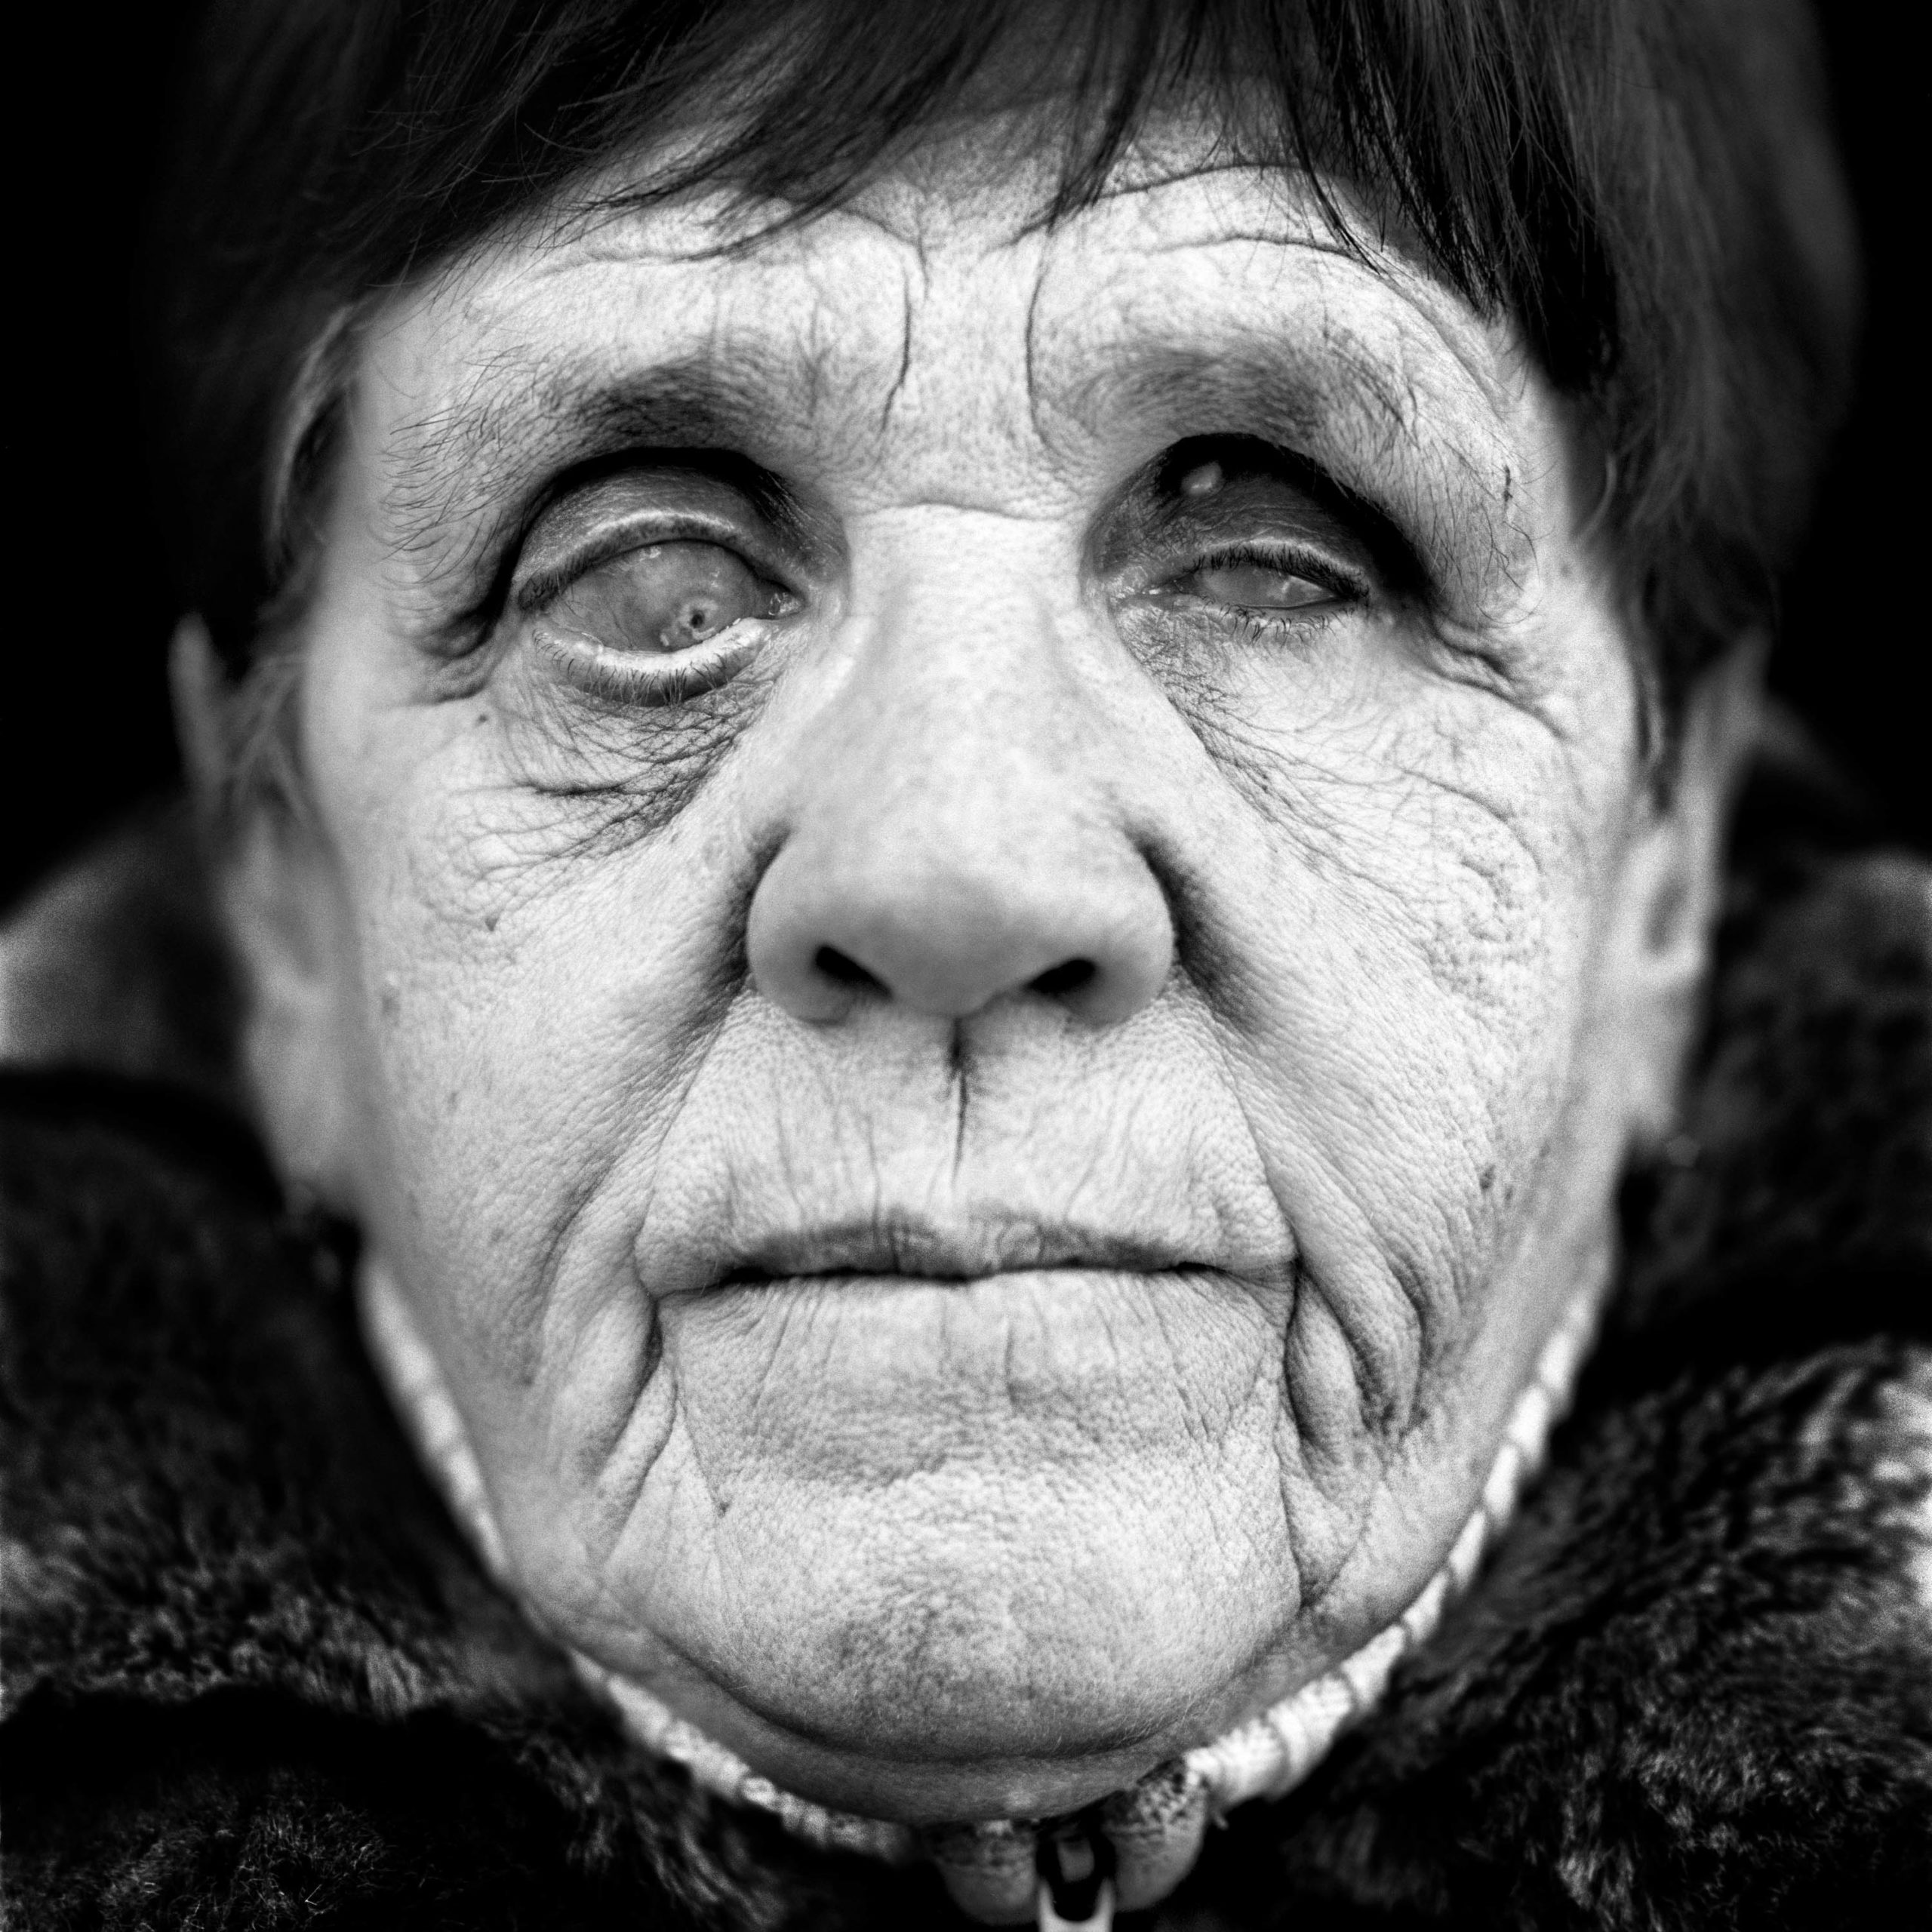 """Elena Griczienko (USSR, 1939). Interview outtake: """"We sat together with the cattle in a train carriage. There was hardly anything to eat, and I was ill. I had symptoms of frostbite in my legs and then in my eyes. I was blind by the spring. """""""